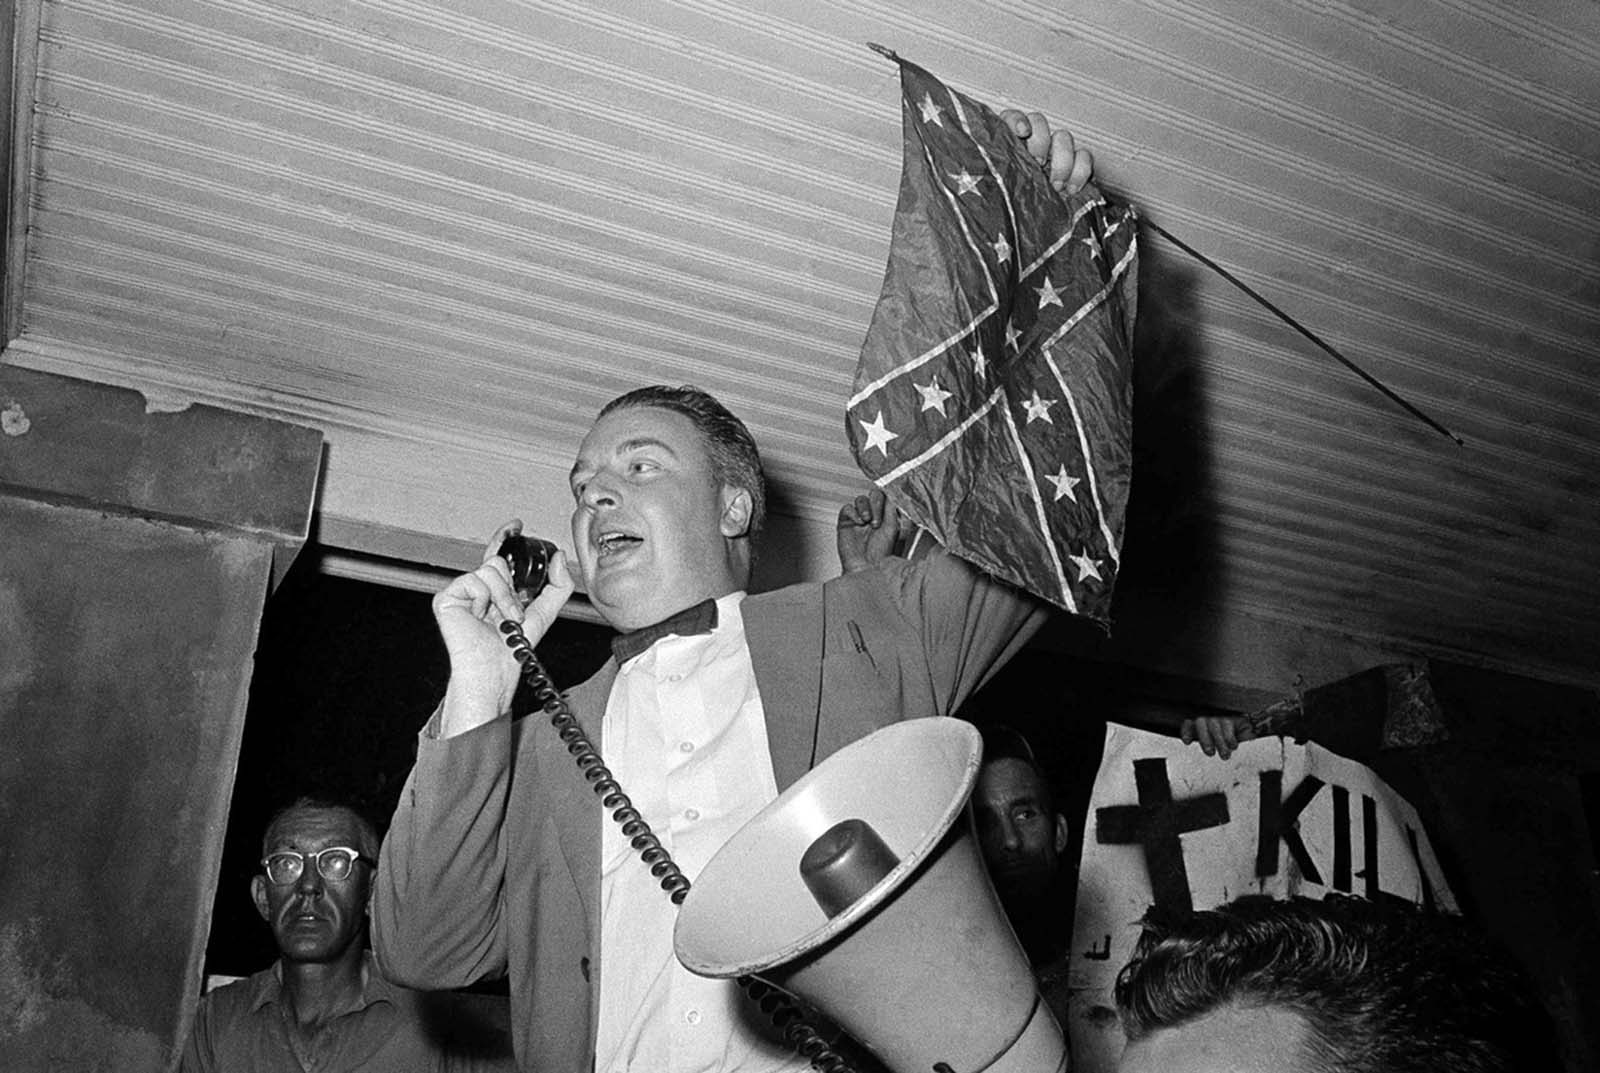 J.B. Stoner, segregationist from Atlanta, Georgia, holds a confederate flag as he addresses a large crowd of whites at a slave market in St. Augustine, Florida, on June 13, 1964 and then leads them on a long march through an African American residential section. At right is sign that read